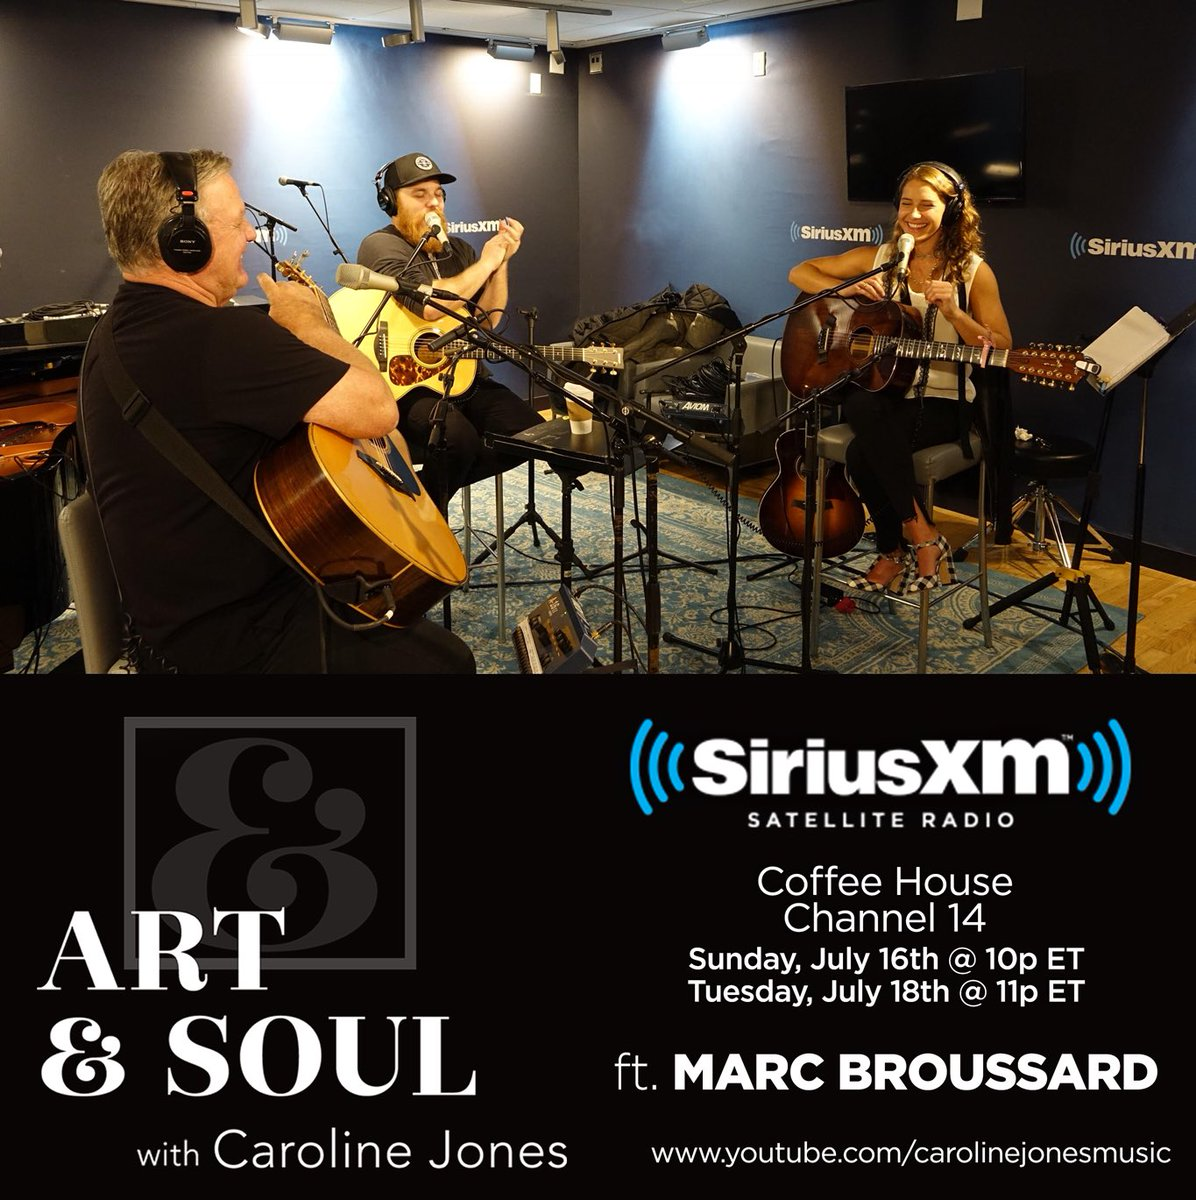 Caroline jones on twitter the soulful marcbroussard is my guest caroline jones on twitter the soulful marcbroussard is my guest on art soul he debuted 4 exclusive tracks for us on siriusxm coffee house publicscrutiny Images